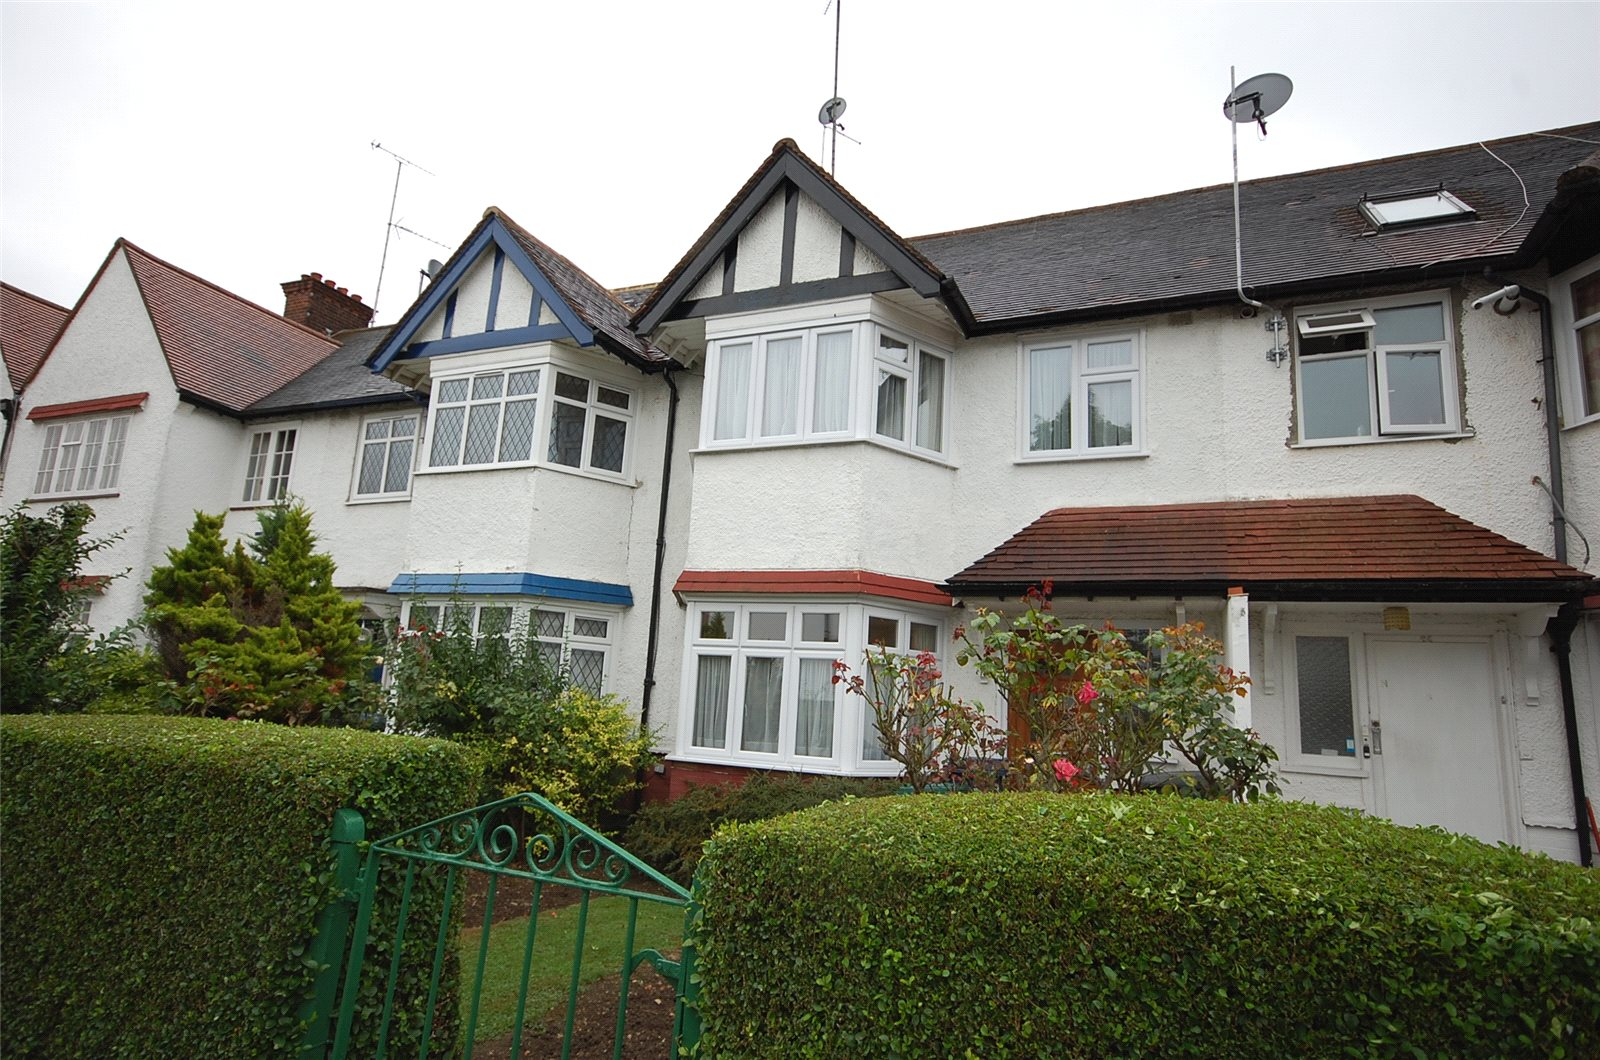 3 Bedrooms Property for sale in Strathmore Gardens Finchley London N3